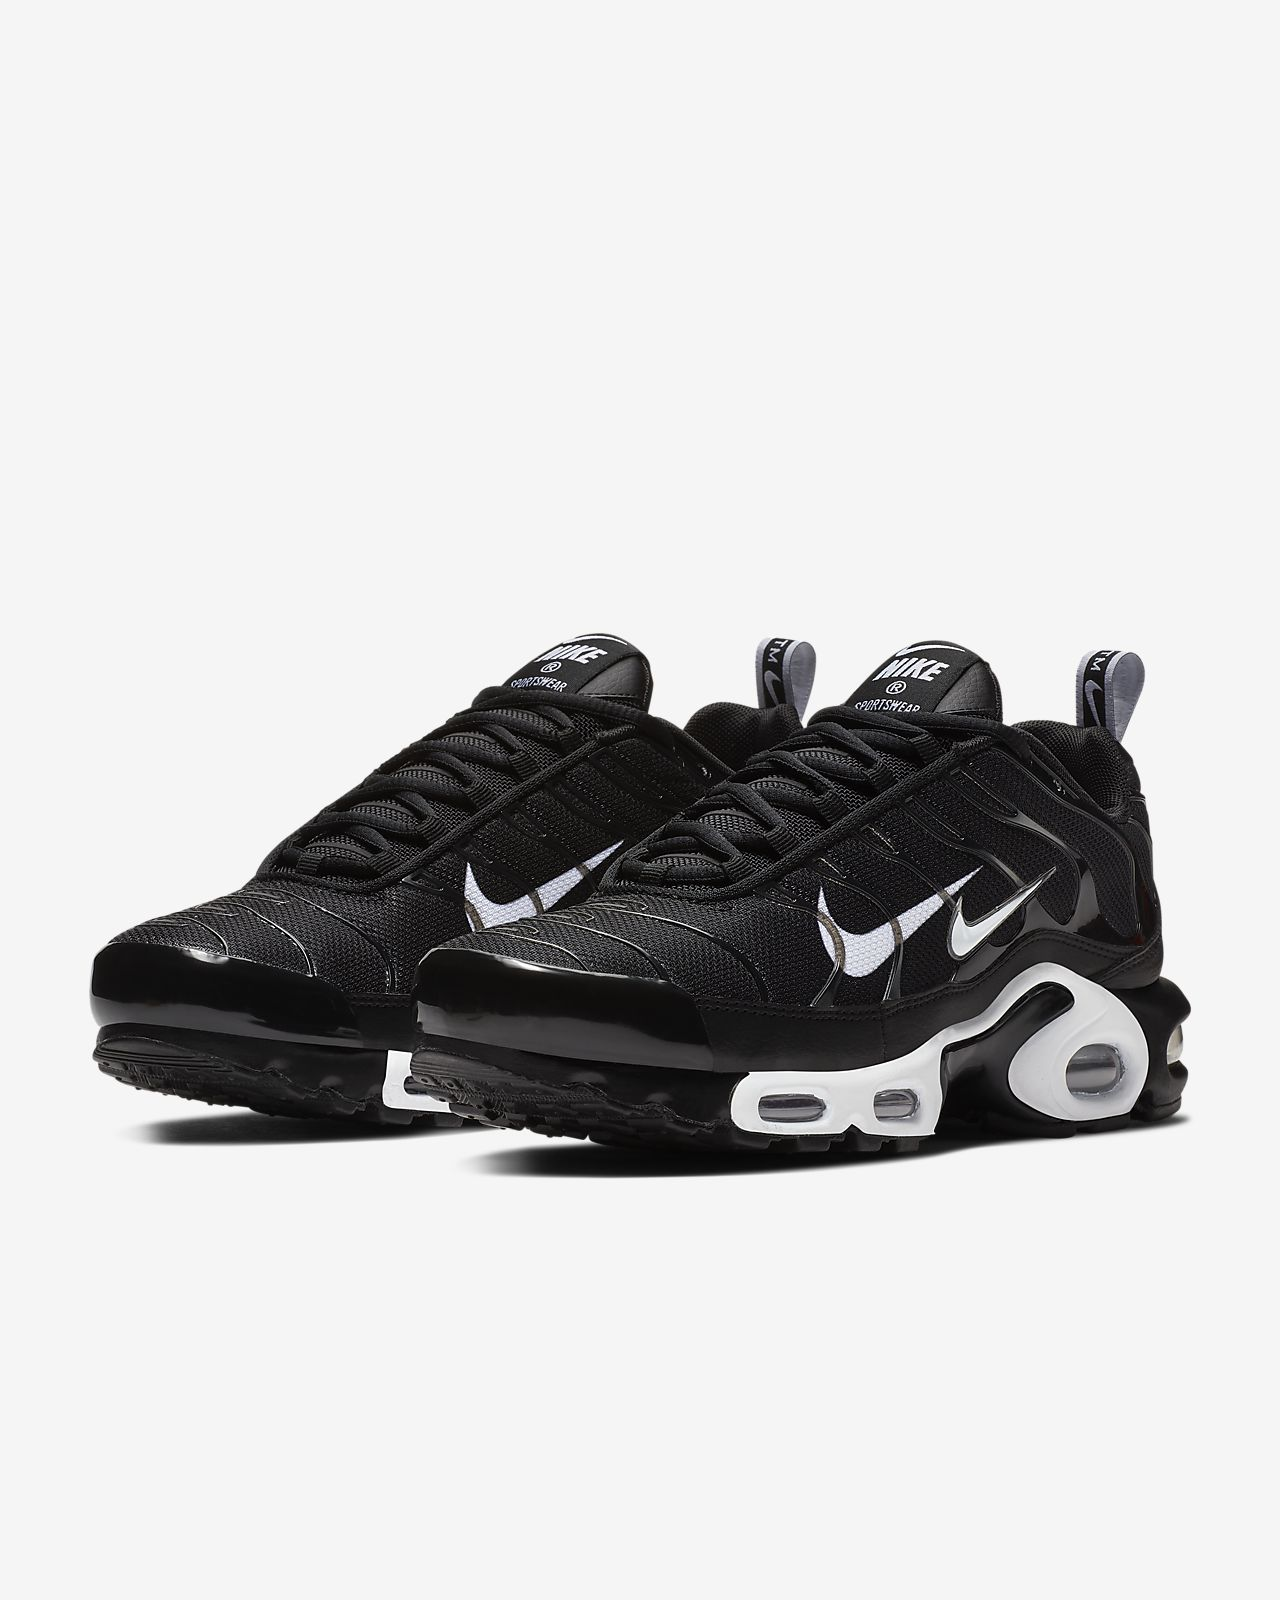 f730593d3e5319 Nike Air Max Plus Premium Men s Shoe. Nike.com GB